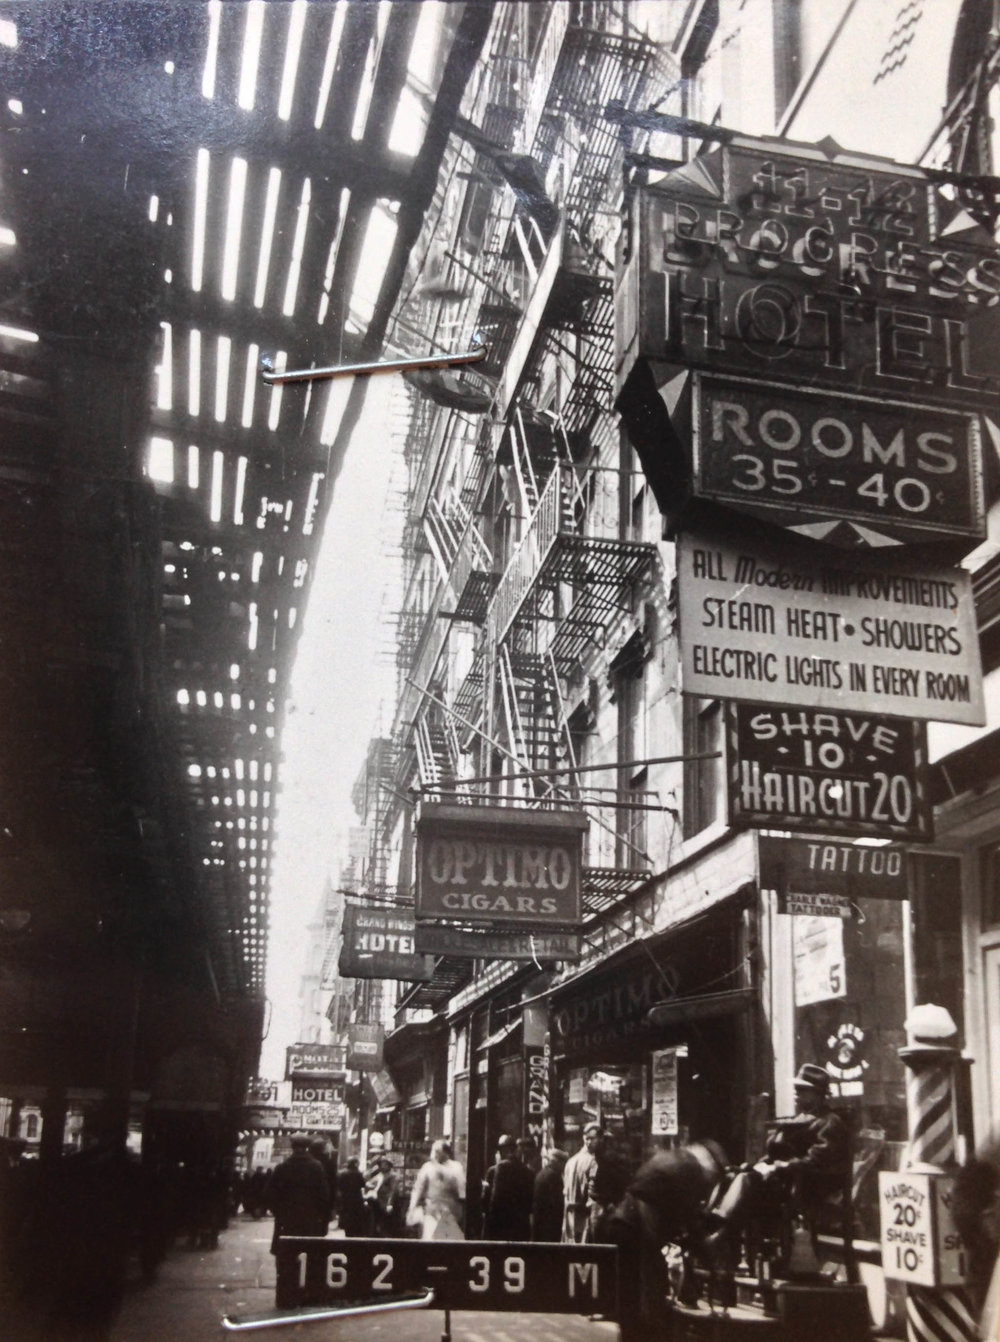 7 Chatham Square, Manhattan, circa 1940. The elevated train tracks, once part of the IRT Third Avenue Line, have been demolished. Prices on signs include 35 cents for a hotel rooms and a 10 cent barber shop shave. Department of Finance Collection, NYC Municipal Archives.